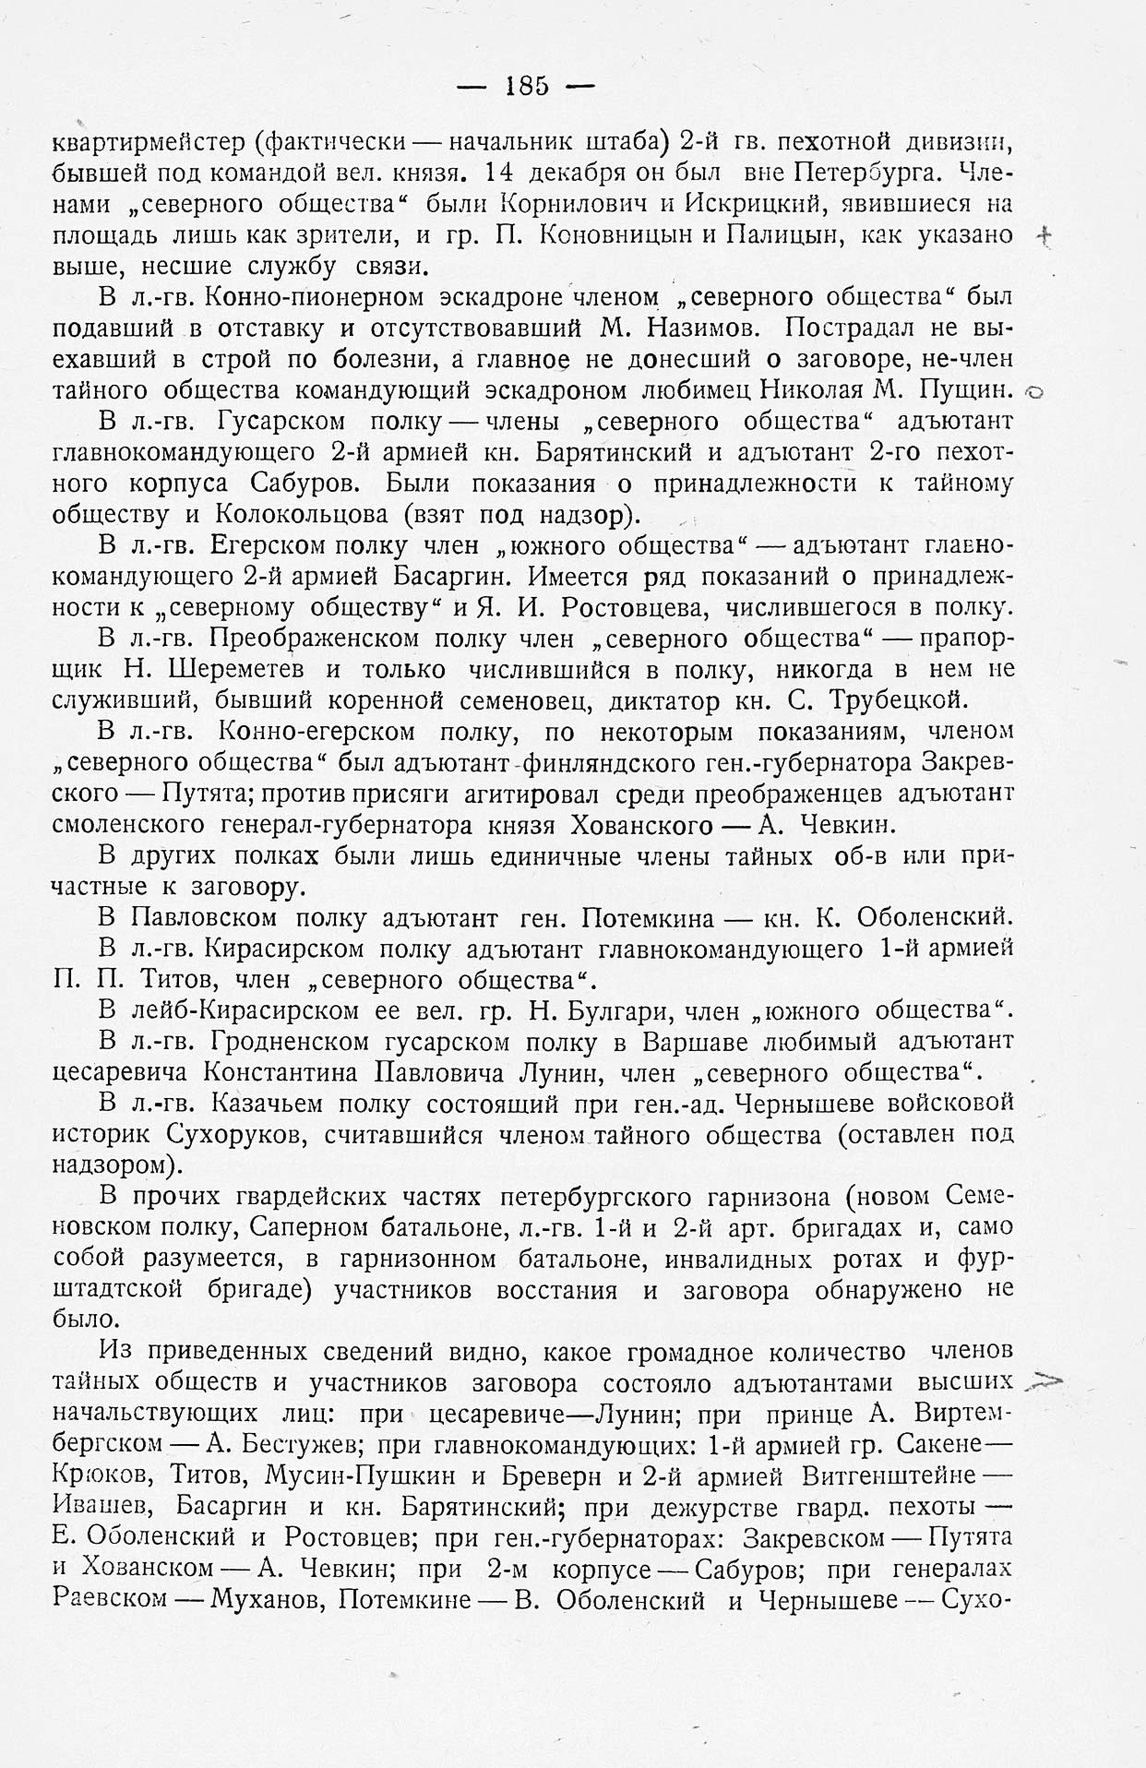 http://elib.shpl.ru/pages/566082/zooms/7